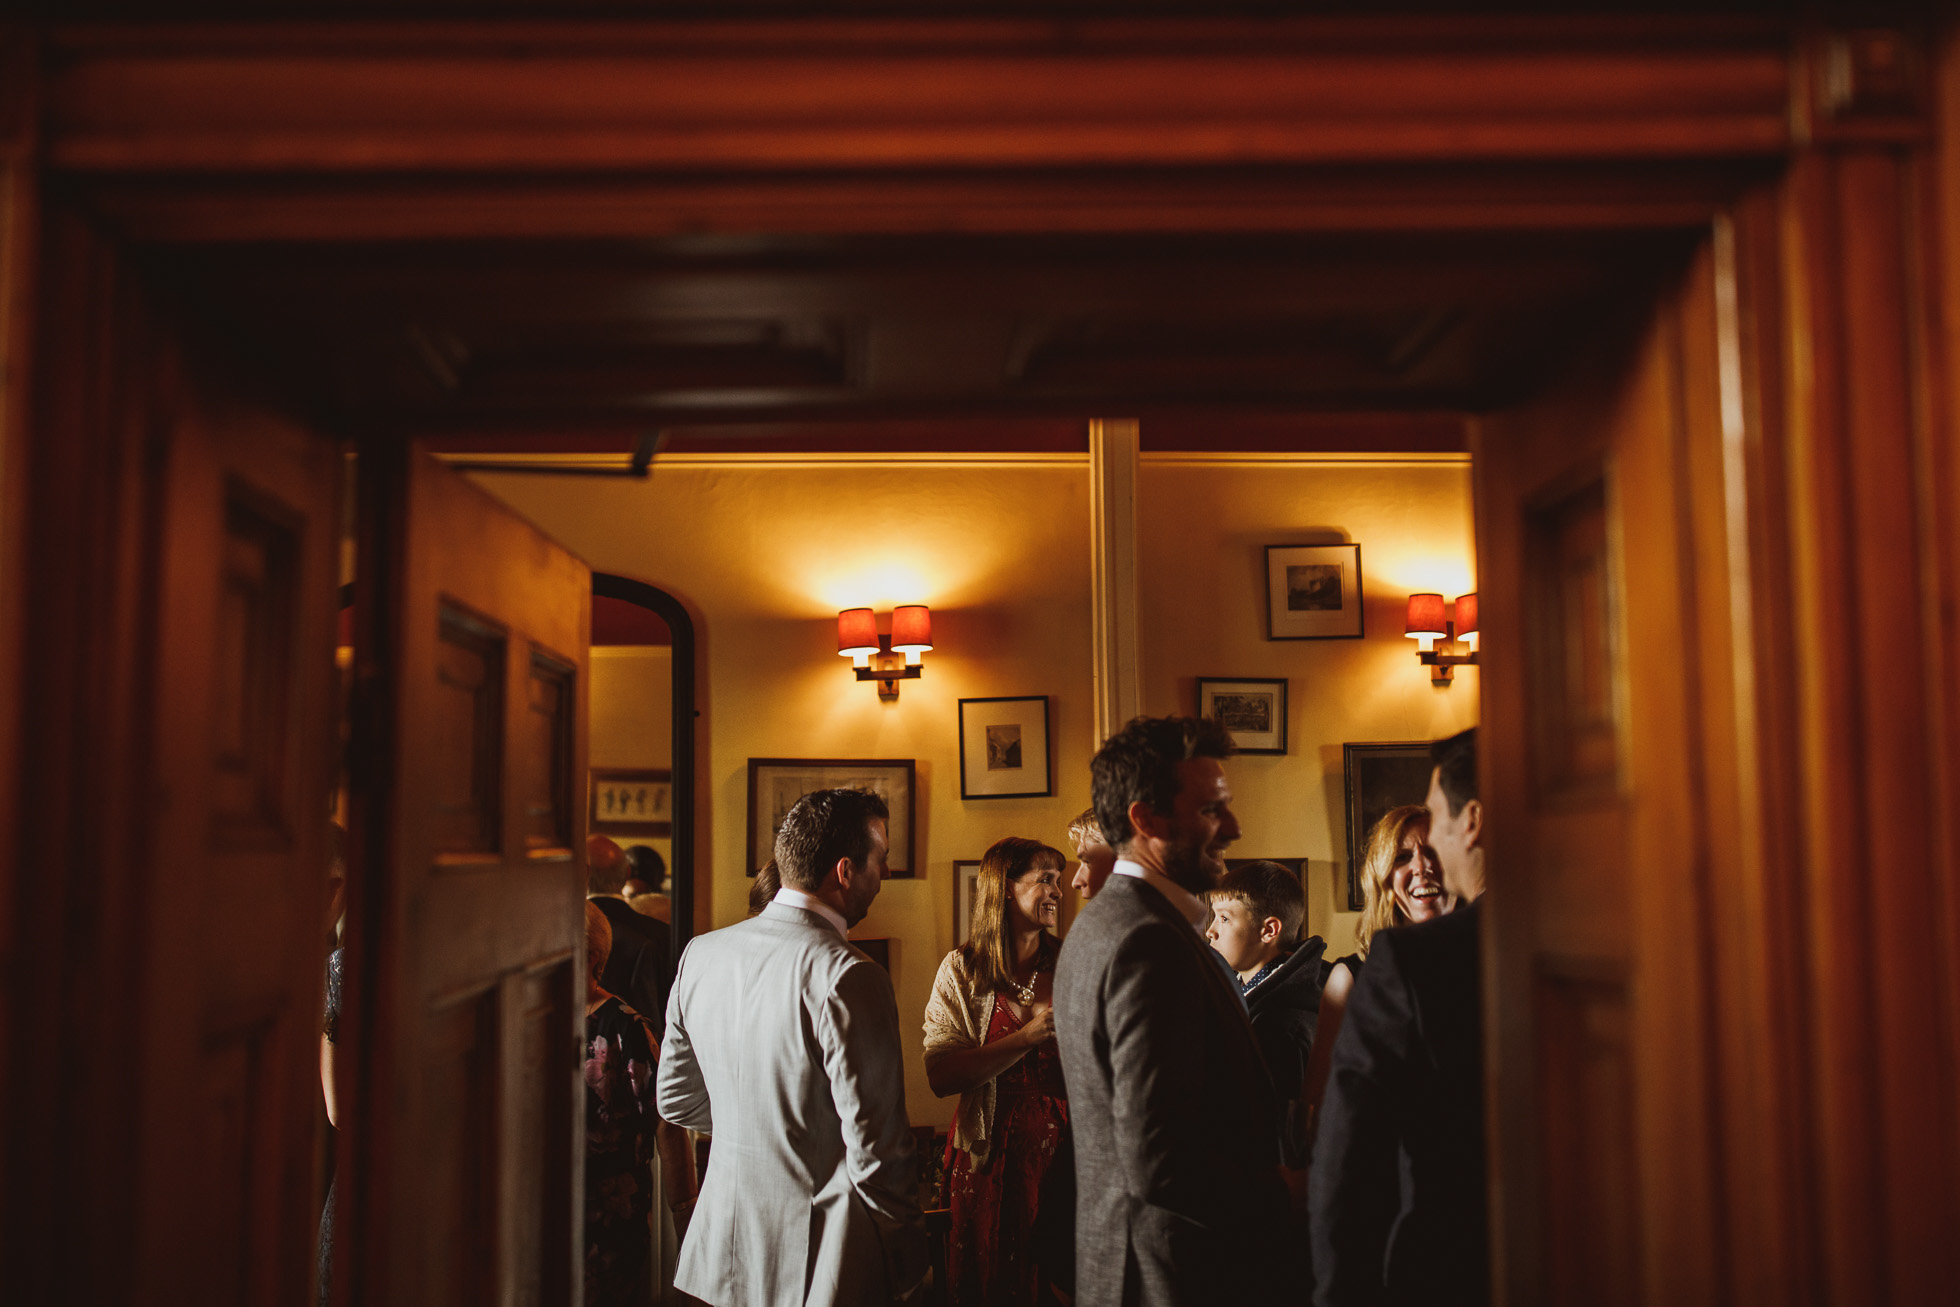 blue_lion_yorkshire_wedding_photographer-89.jpg